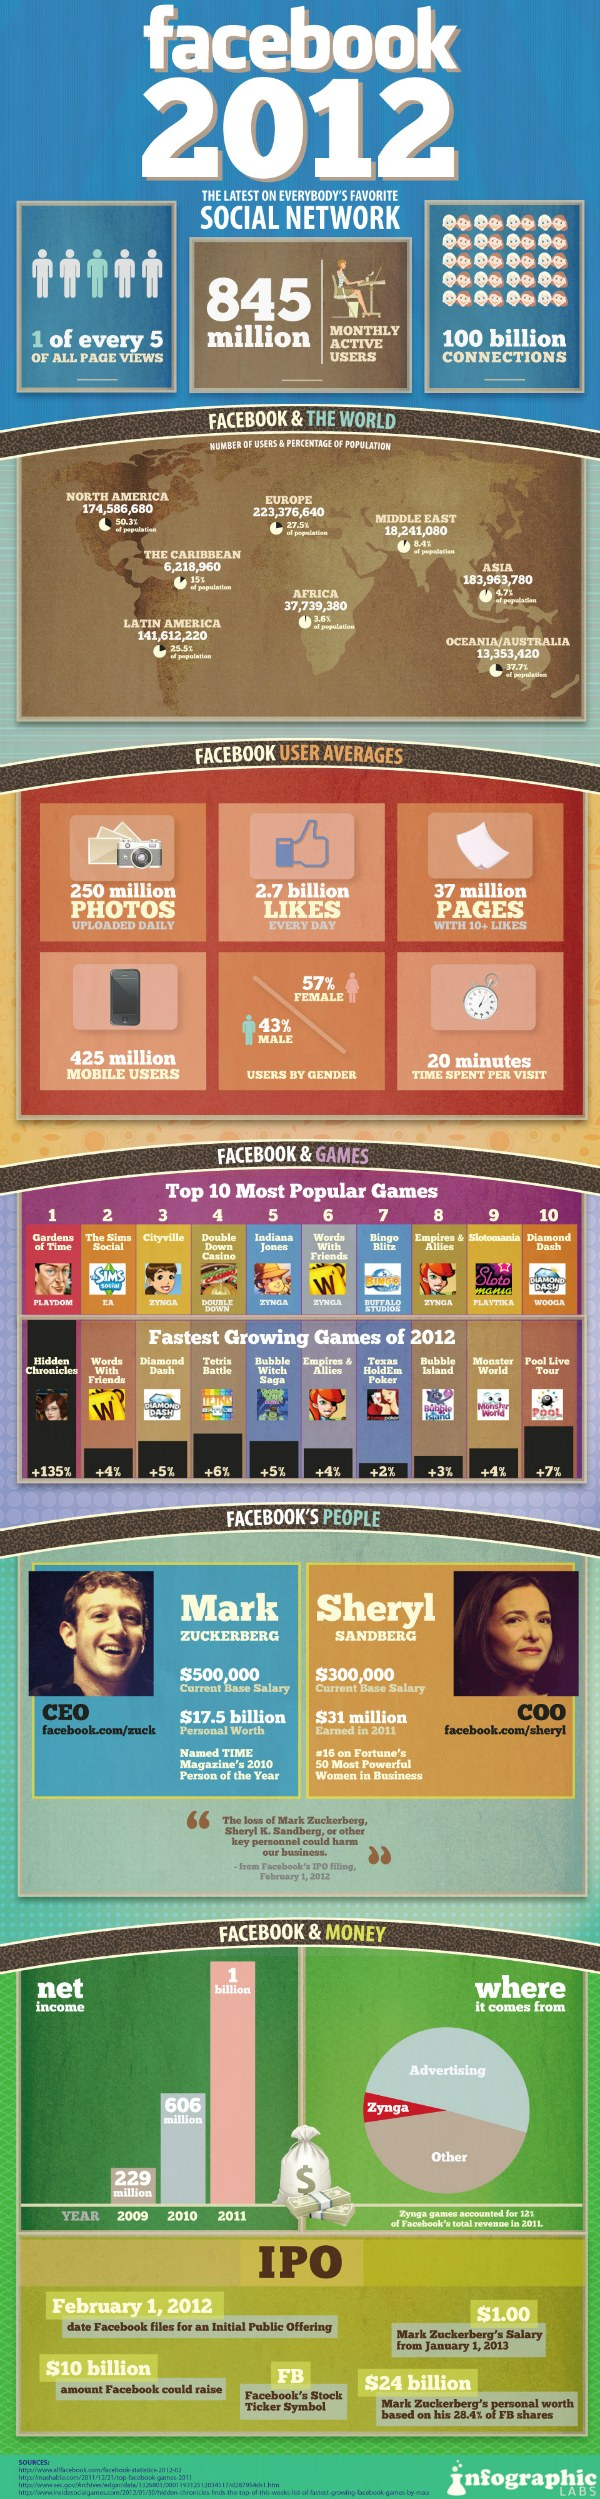 Facebook Stats on 2012